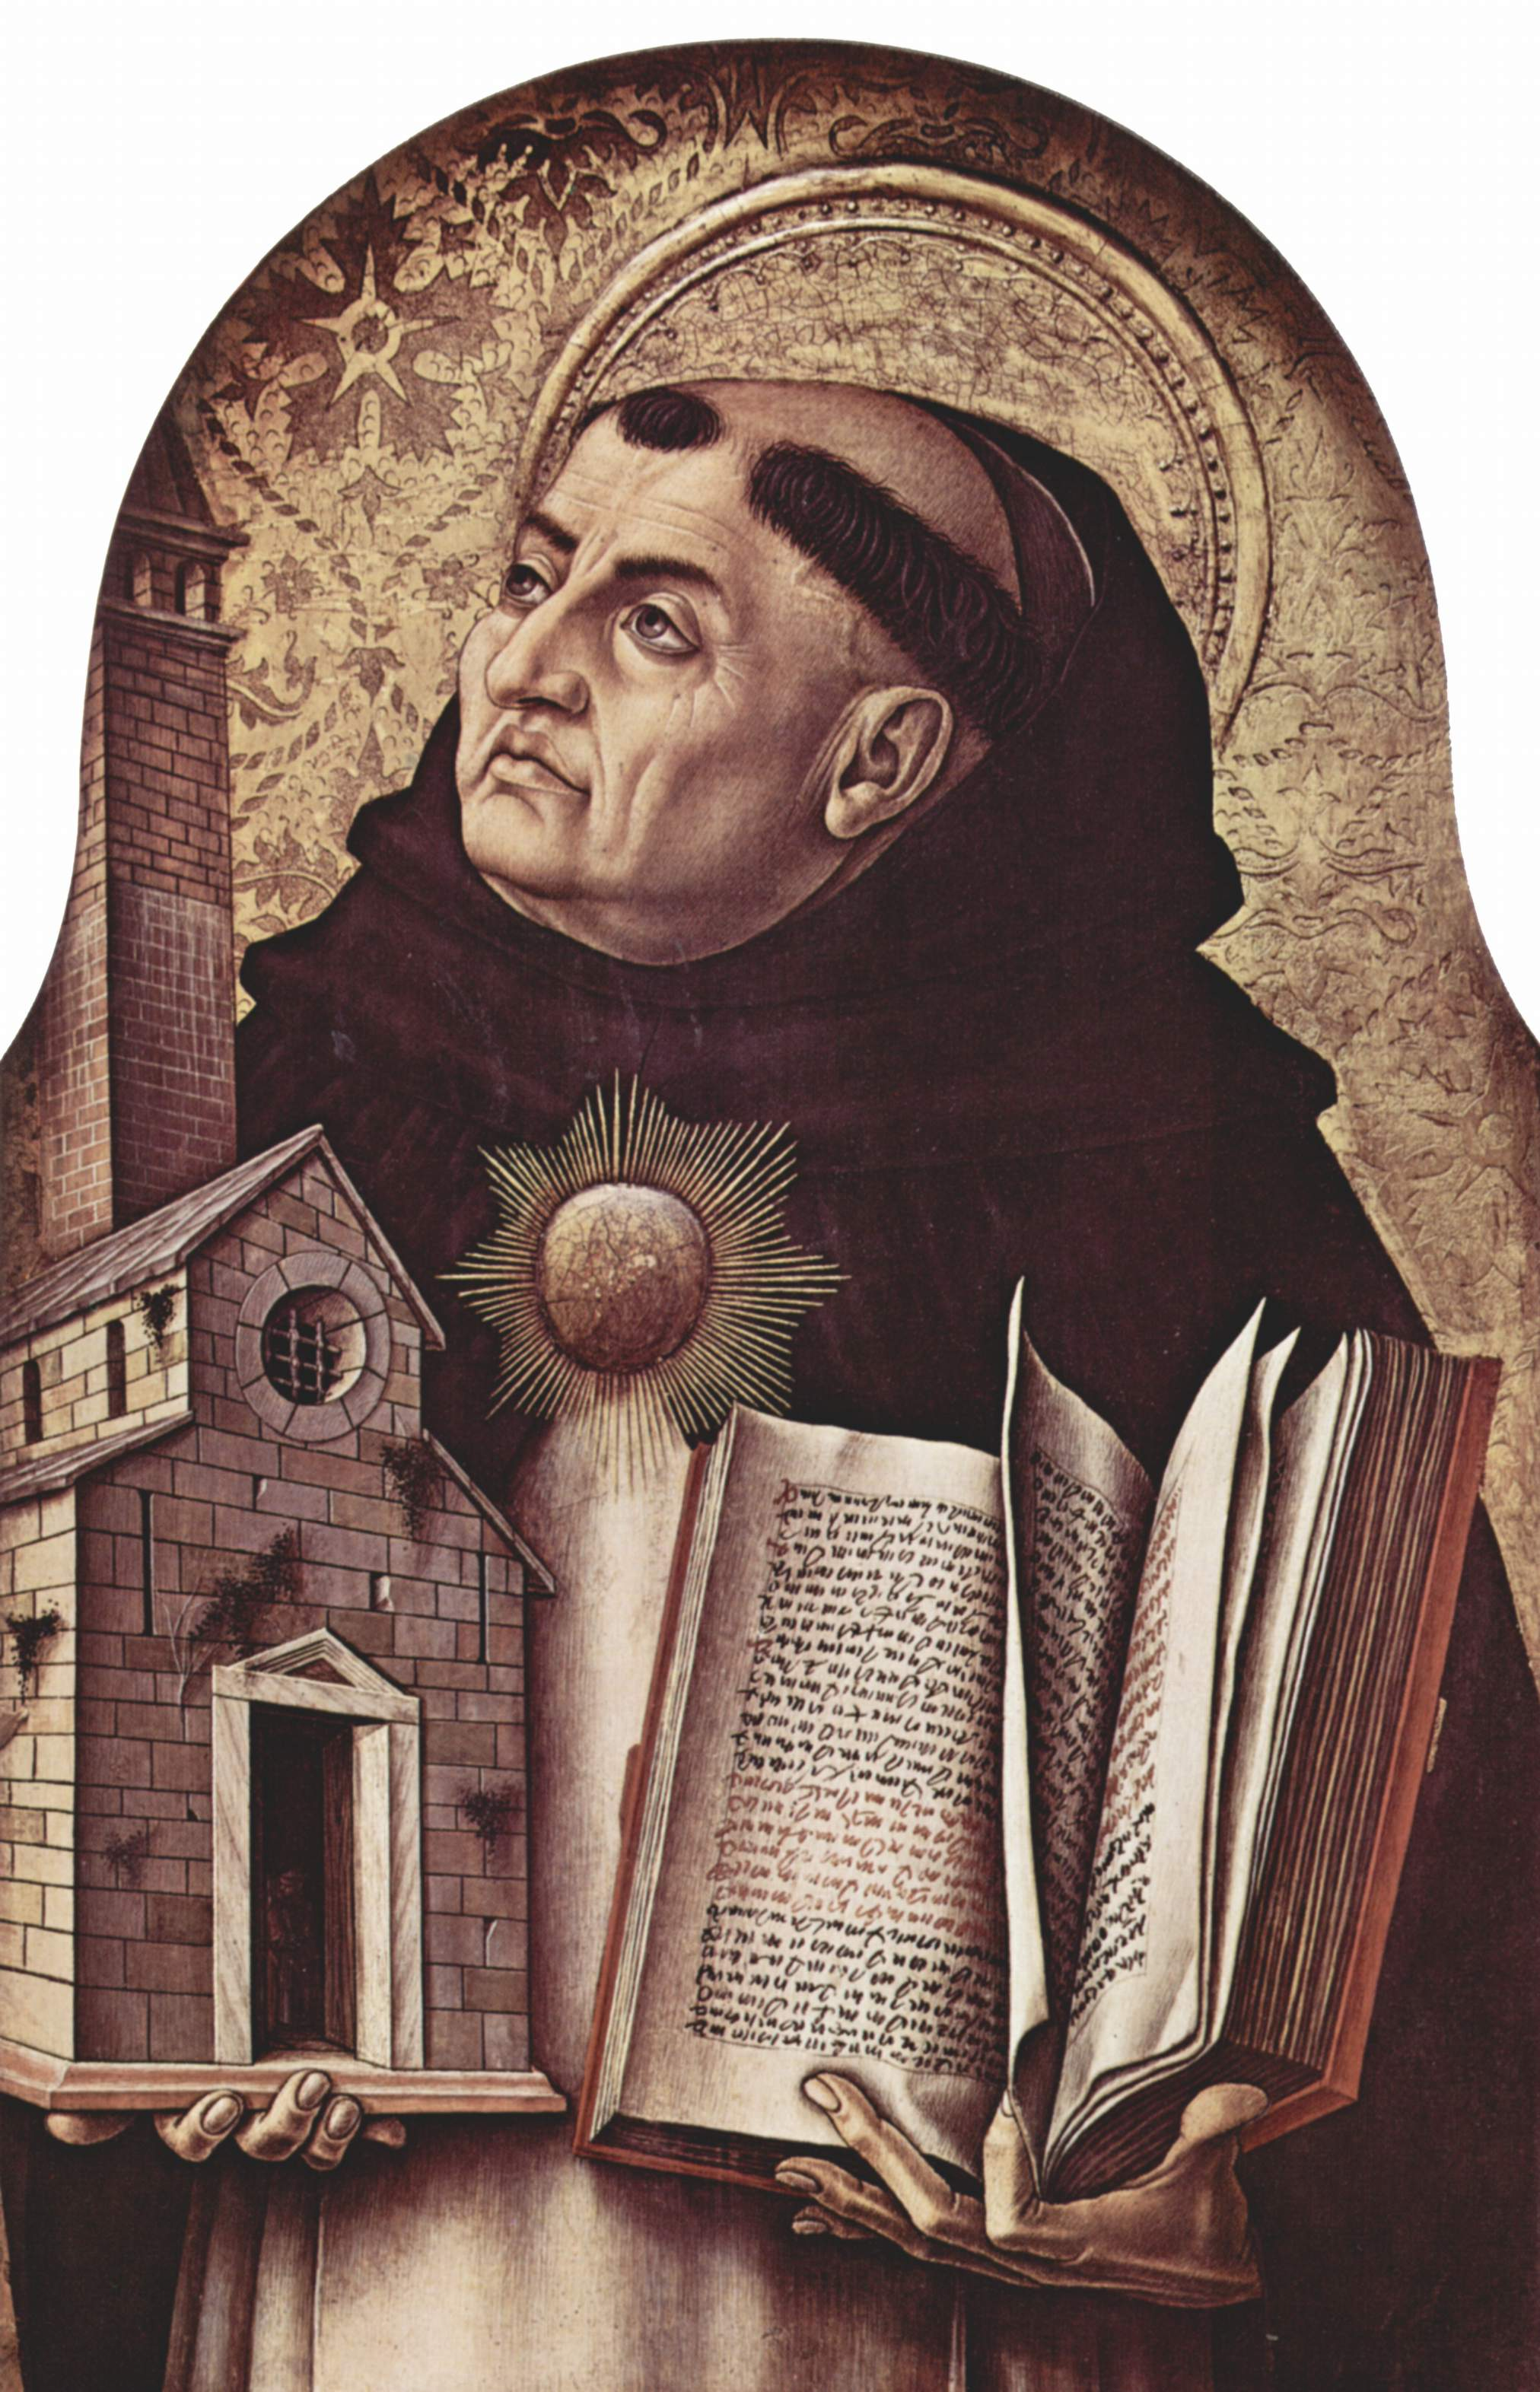 St. Thomas Aquinas – An altarpiece in  Ascoli Piceno , Italy, by  Carlo Crivelli  (15th century)  By Carlo Crivelli - Via The Yorck Project (2002) 10.000 Meisterwerke der Malerei (DVD-ROM), distributed by DIRECTMEDIA Publishing GmbH. ISBN: 3936122202., Public Domain, https://commons.wikimedia.org/w/index.php?curid=149804